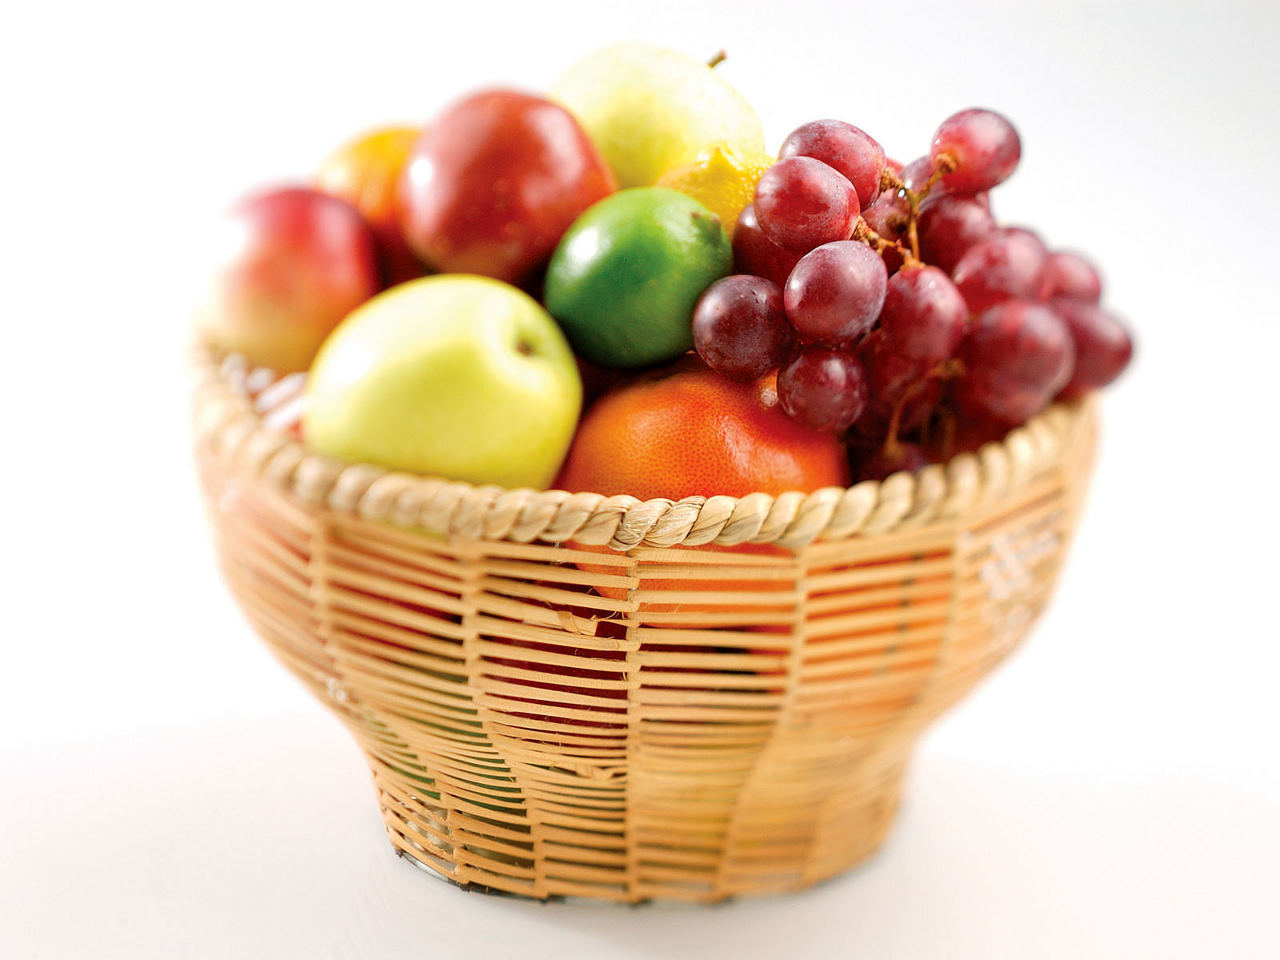 fruits baskets white background HD Wallpaper